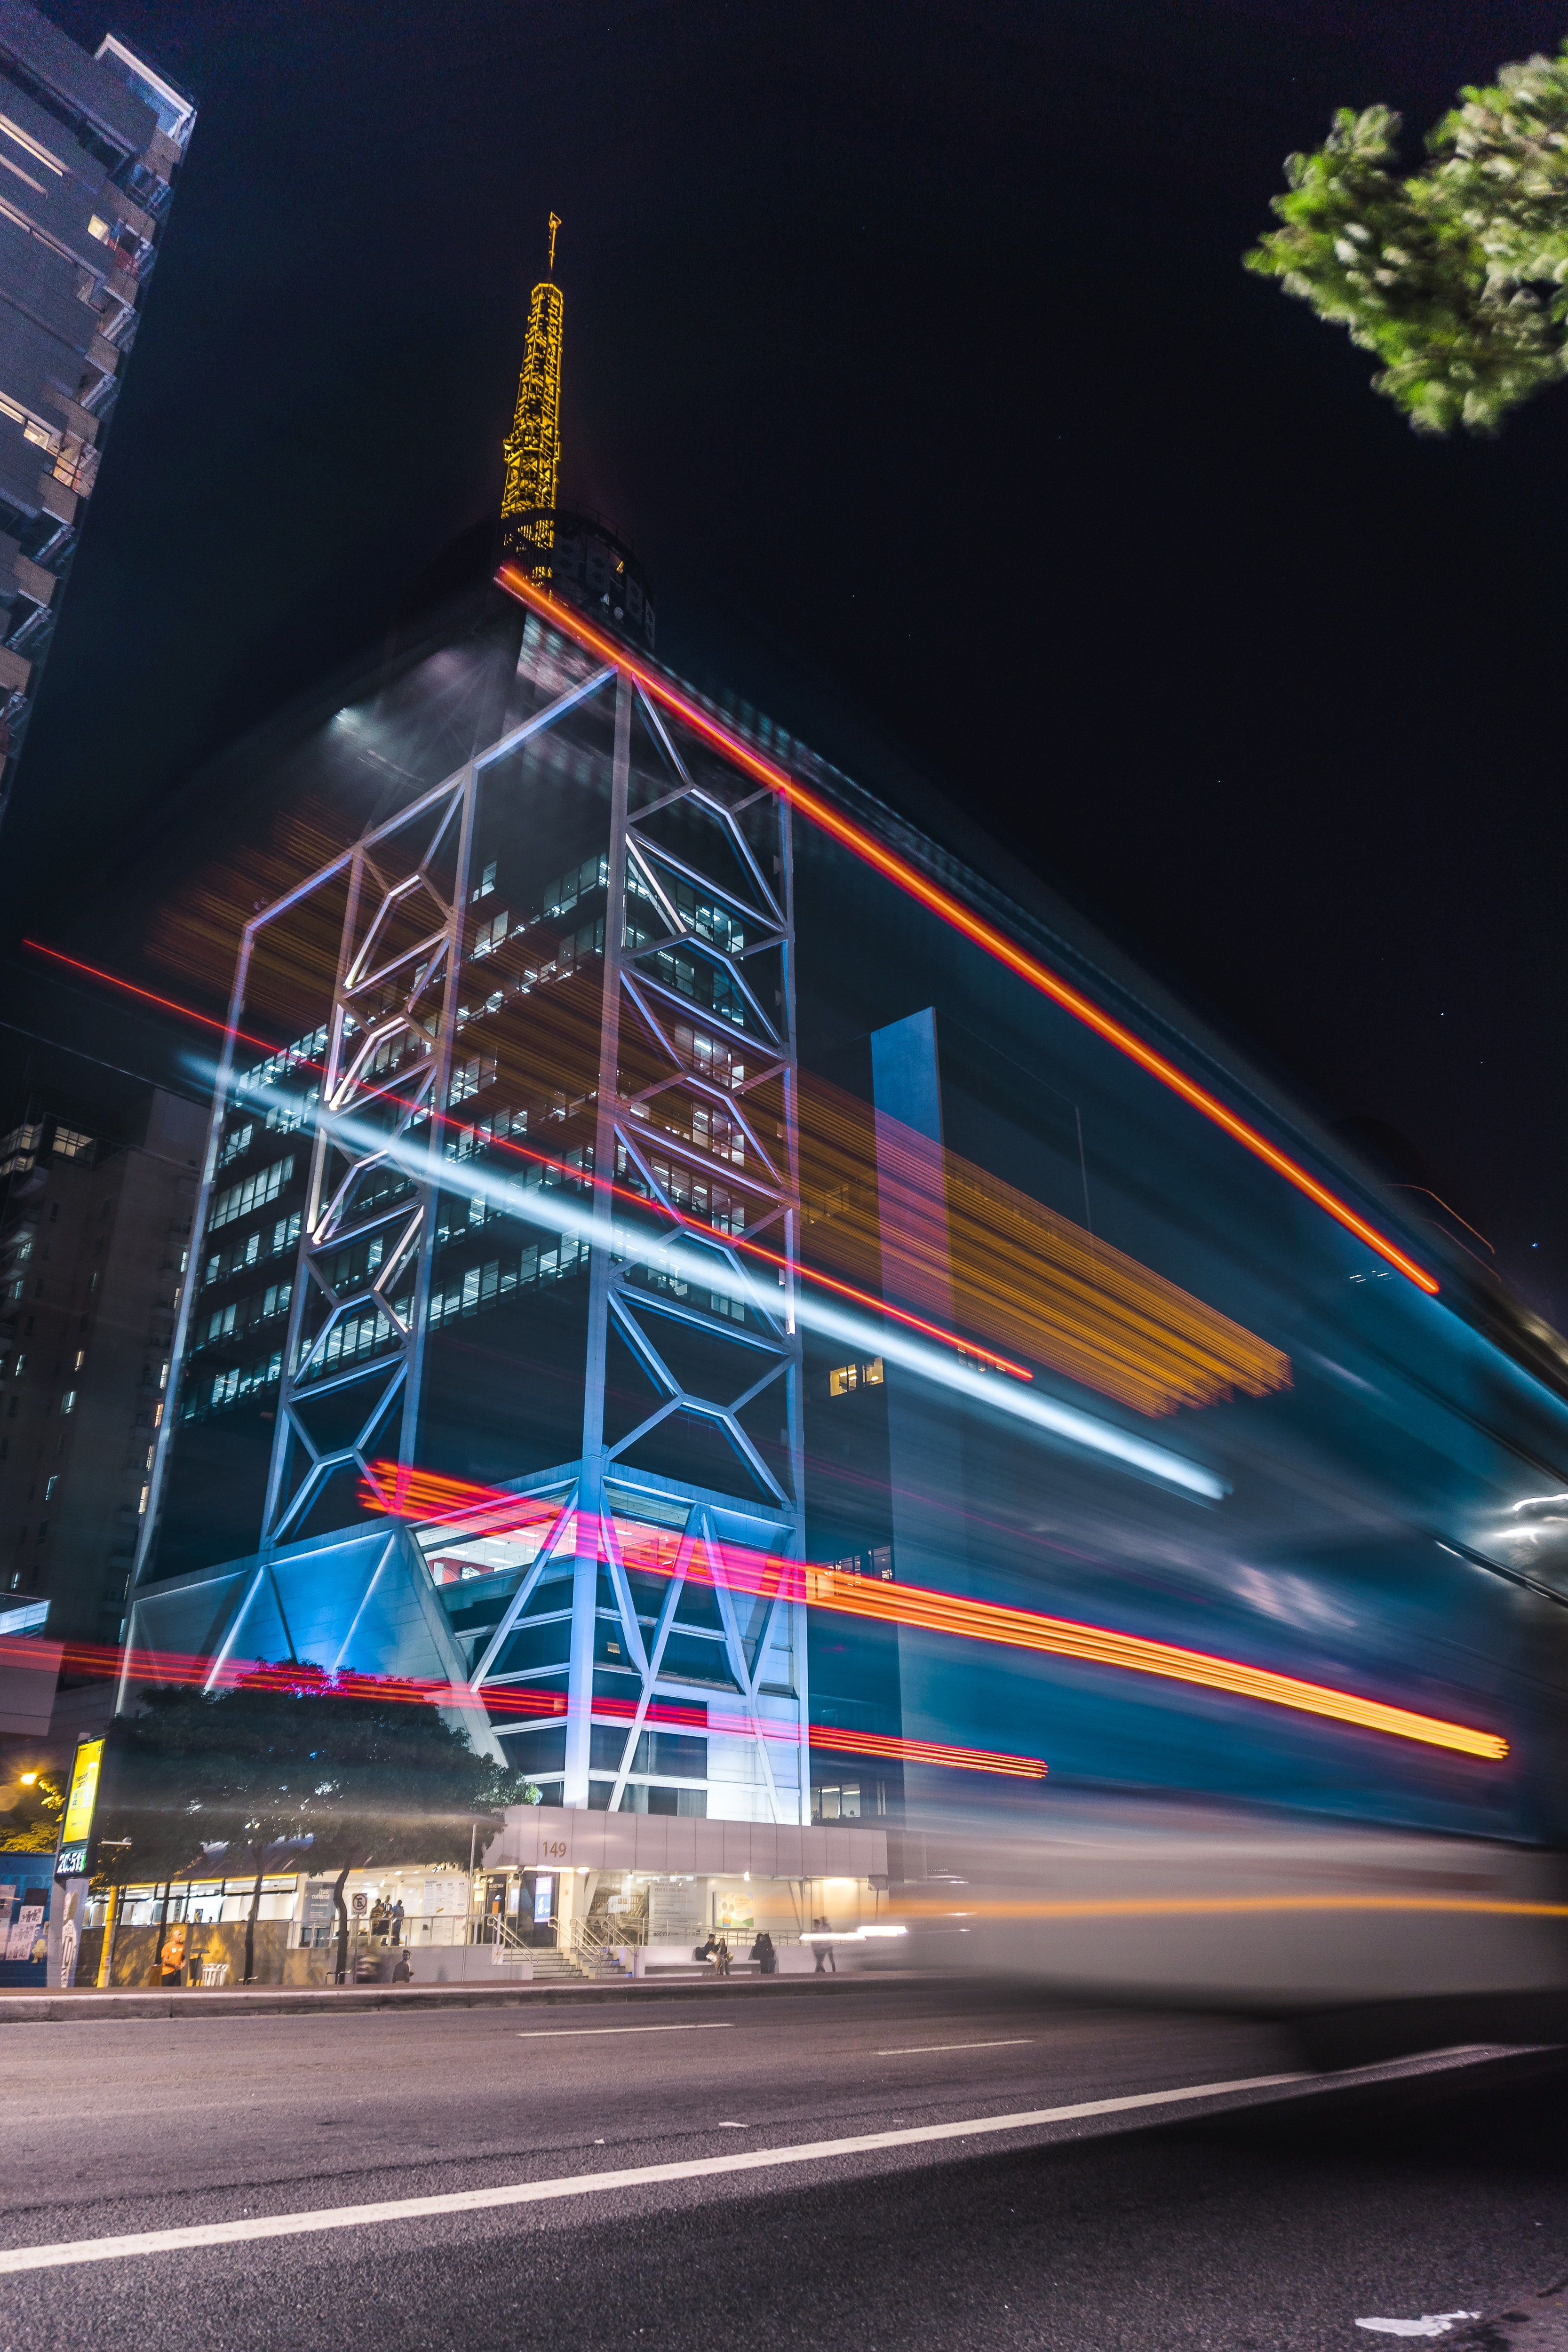 Time Lapse Photography of Cars and Buildings, Pavement, Outdoors, Night, Long exposure, HQ Photo